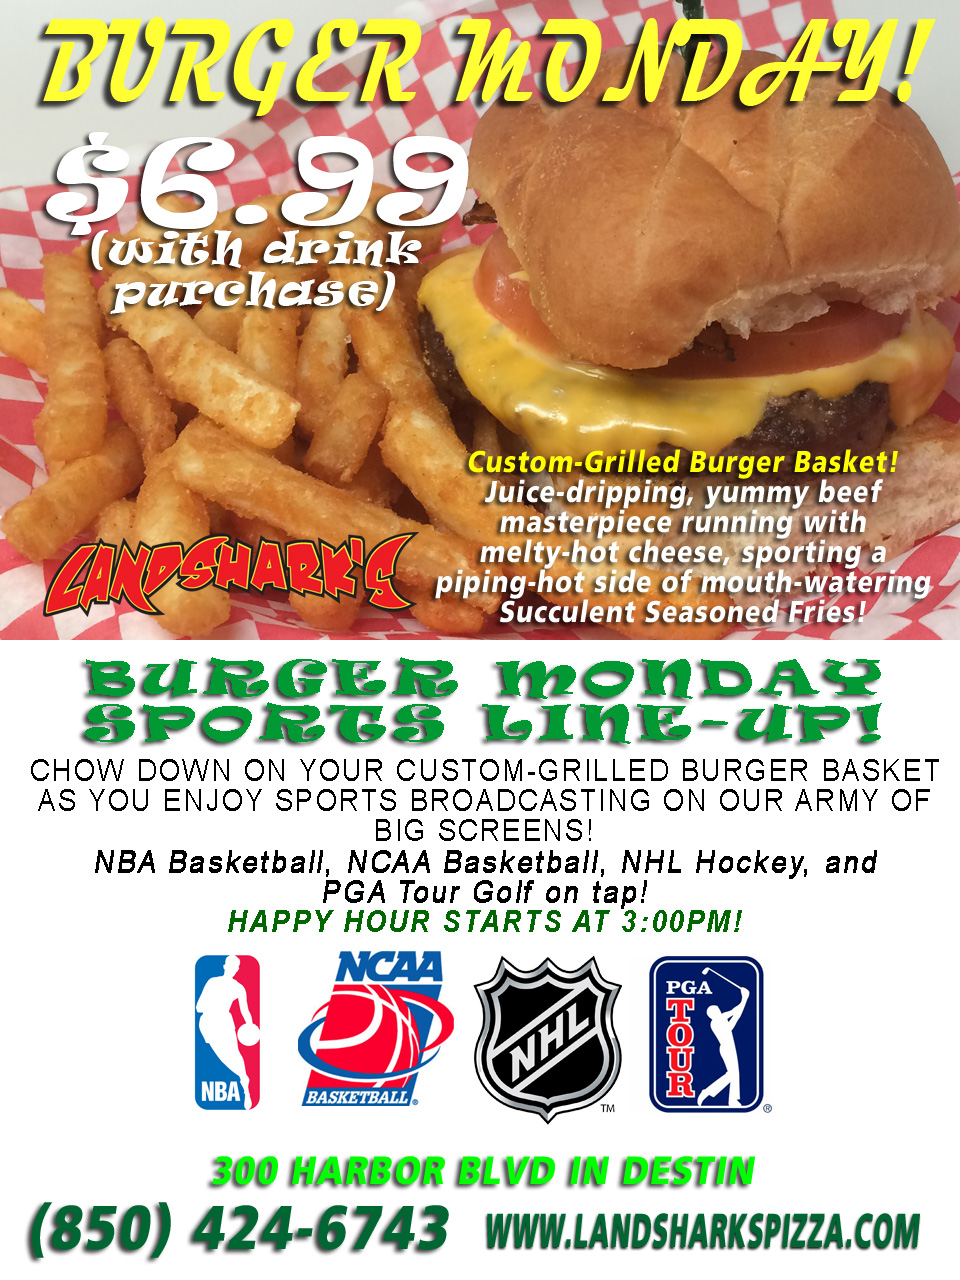 Burger Monday at Landsharks Pizza and Wings in Destin FL